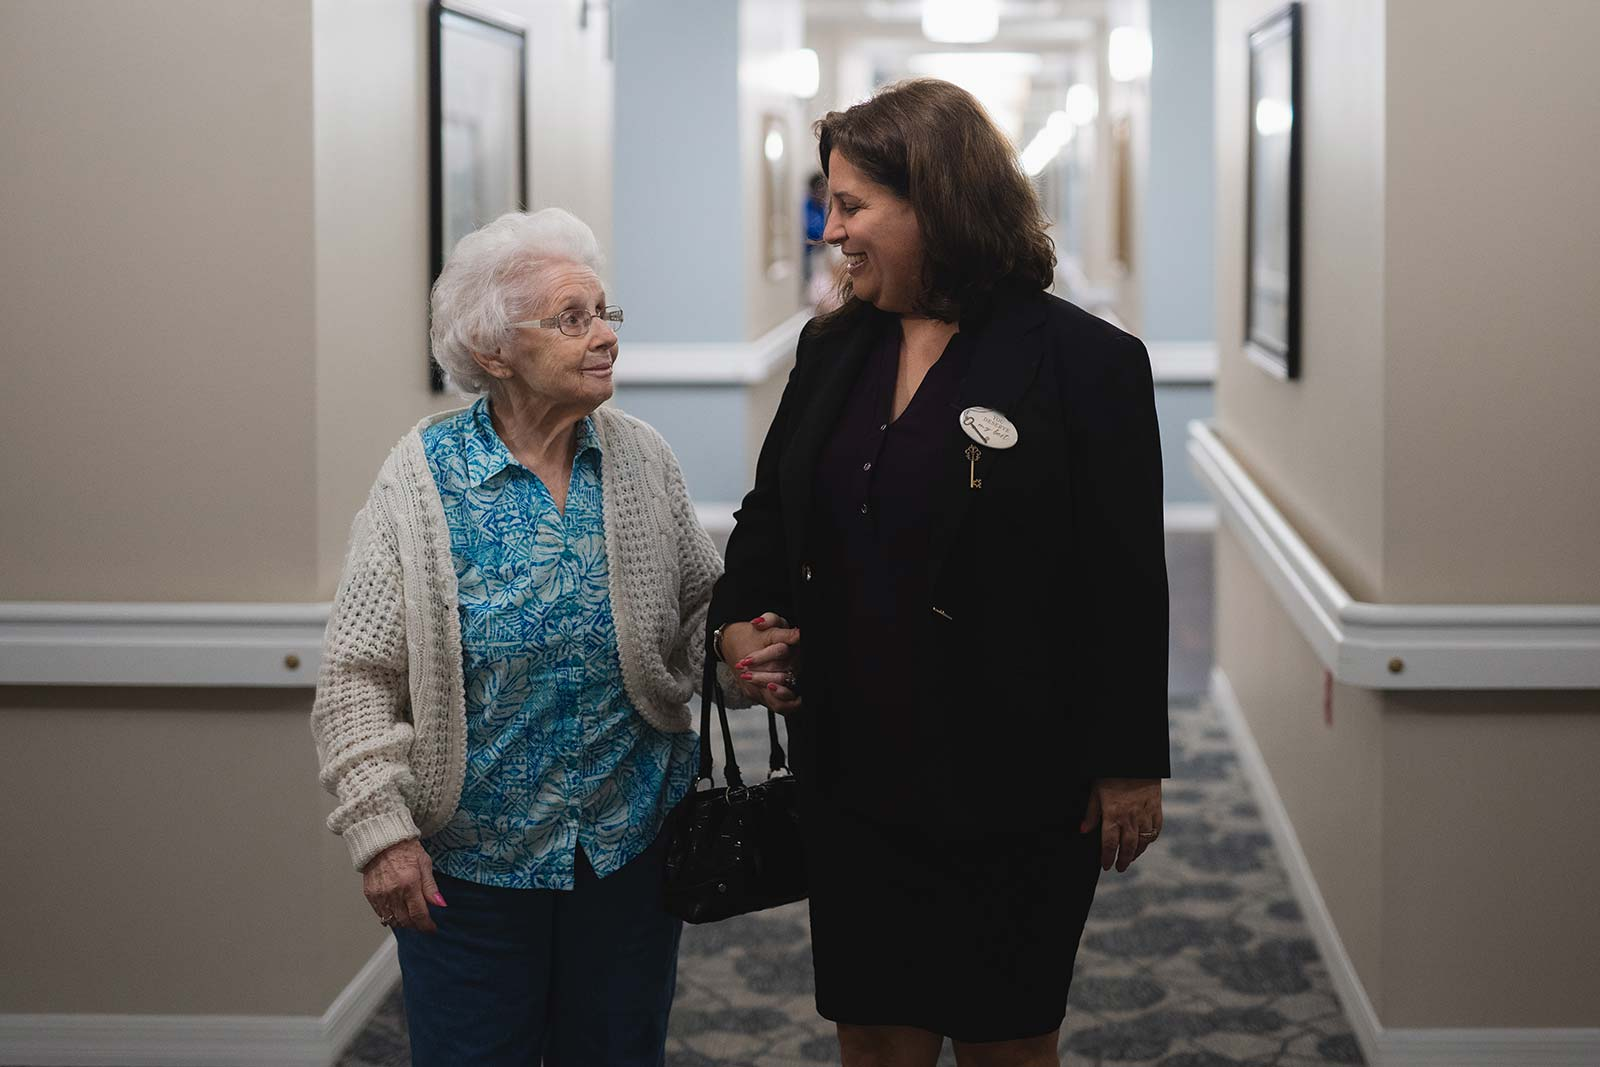 Community staff locking arms with senior woman walking down hallway at The Colonnade at Northdale assisted living and memory community in Tampa, FL